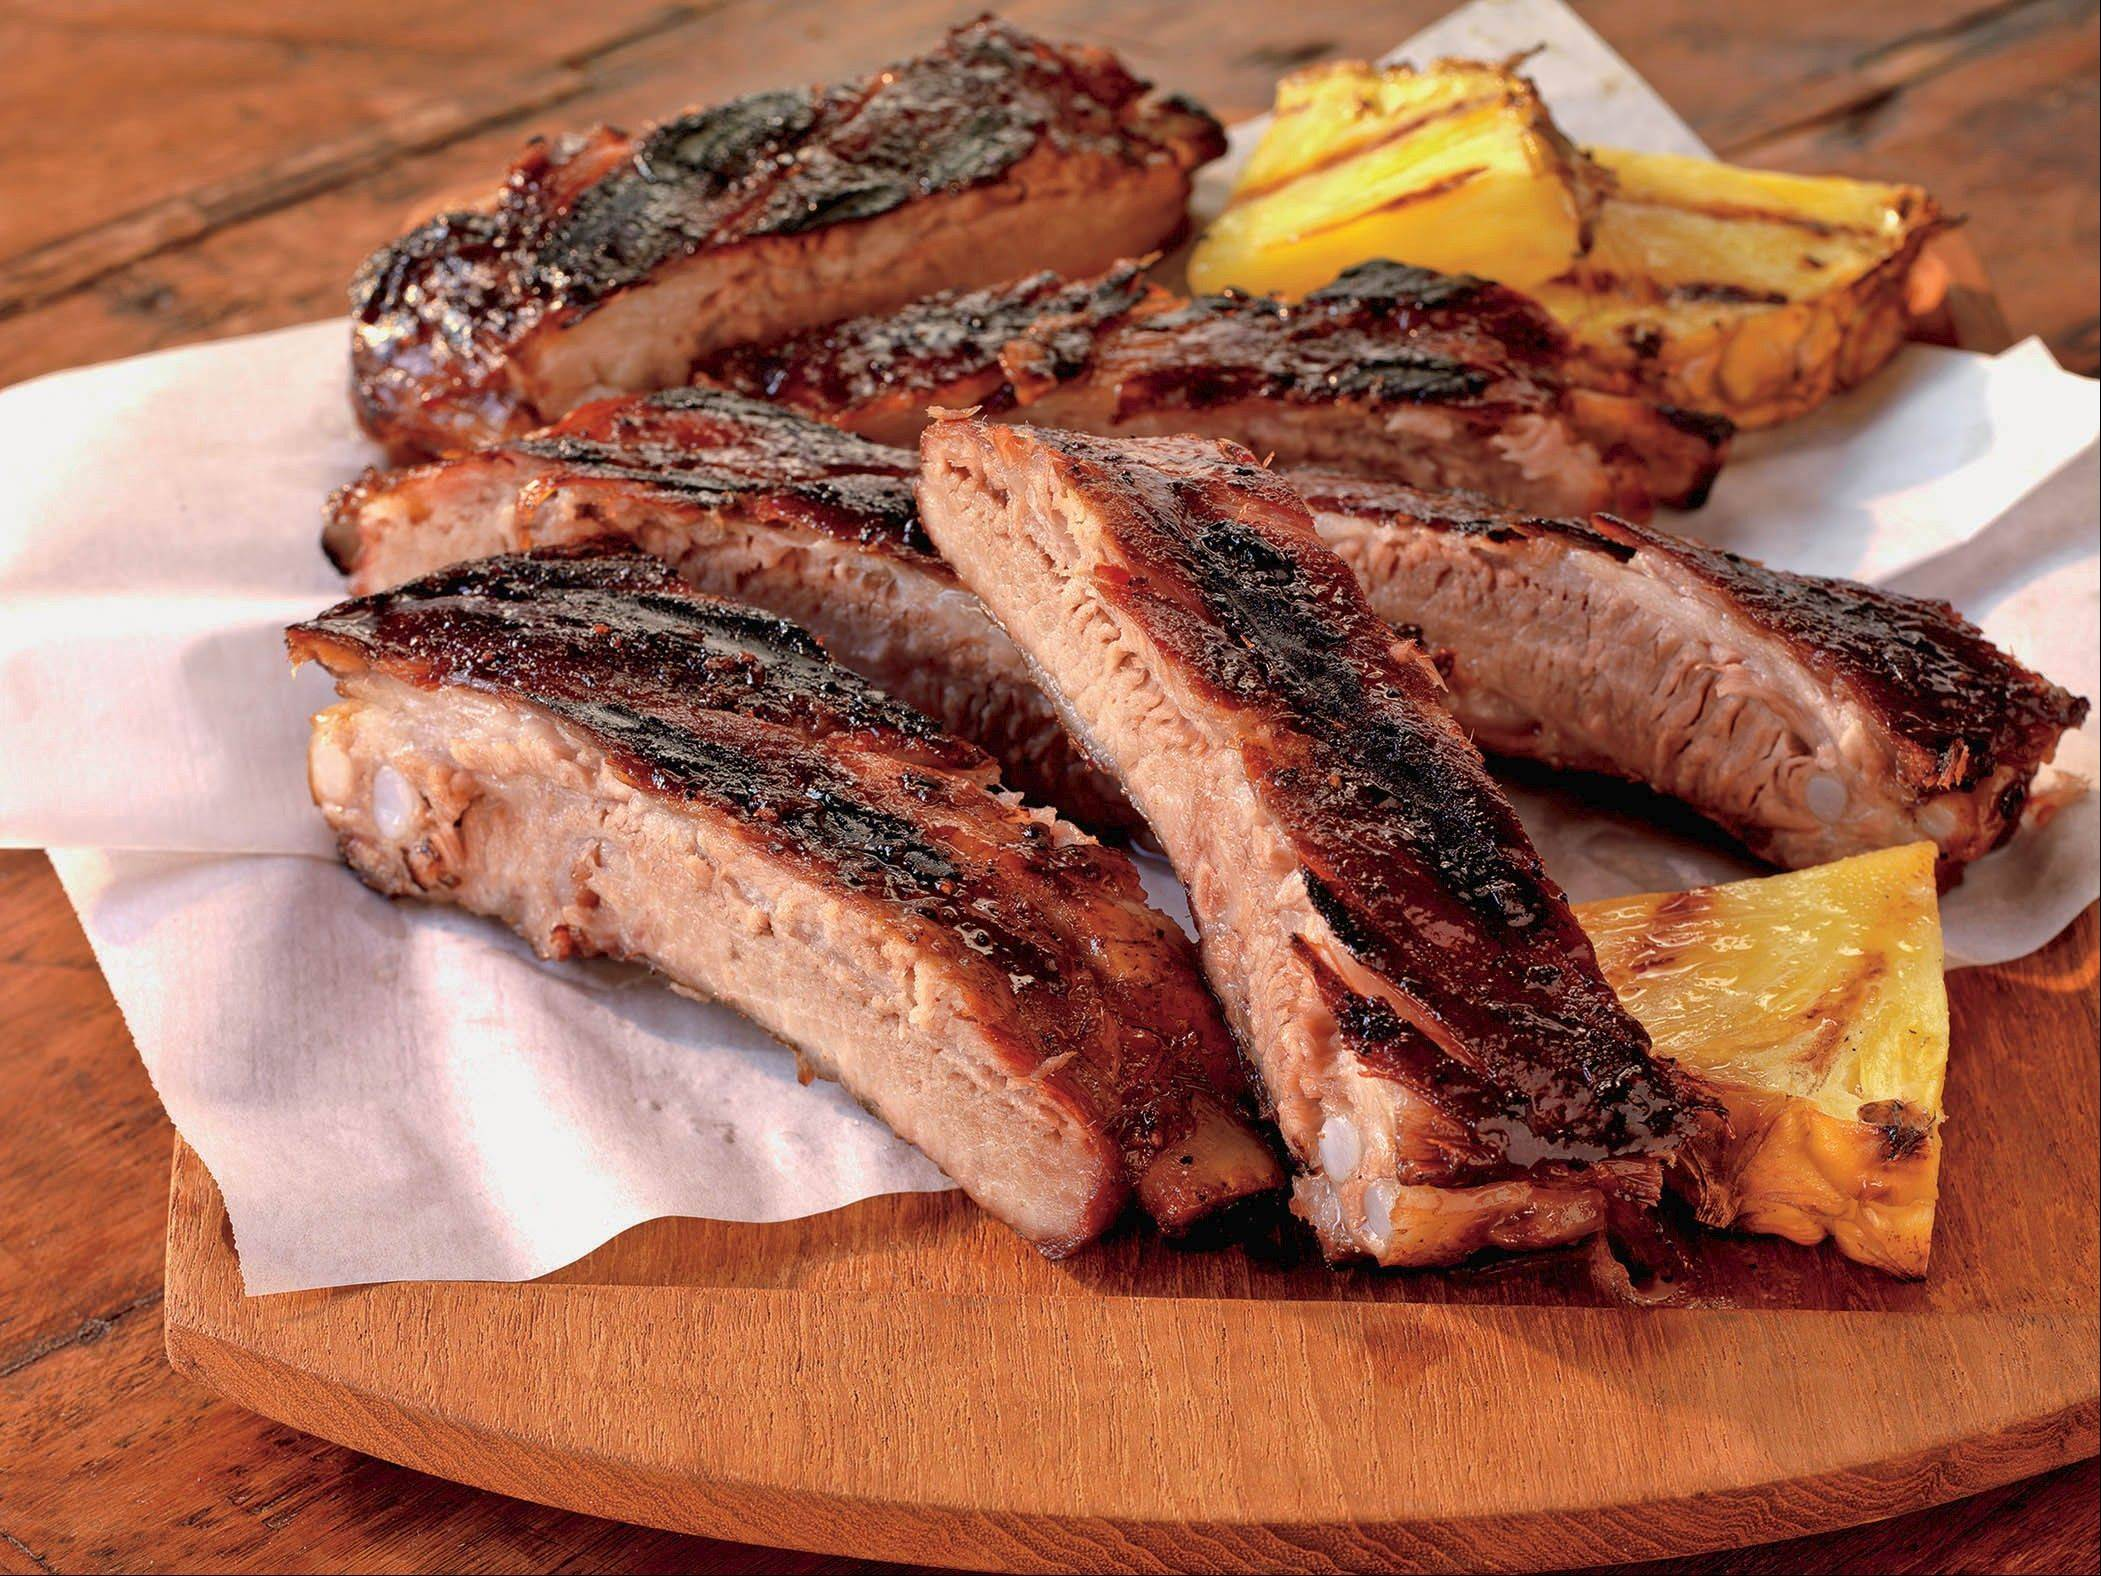 Experts share tips for ribs done right